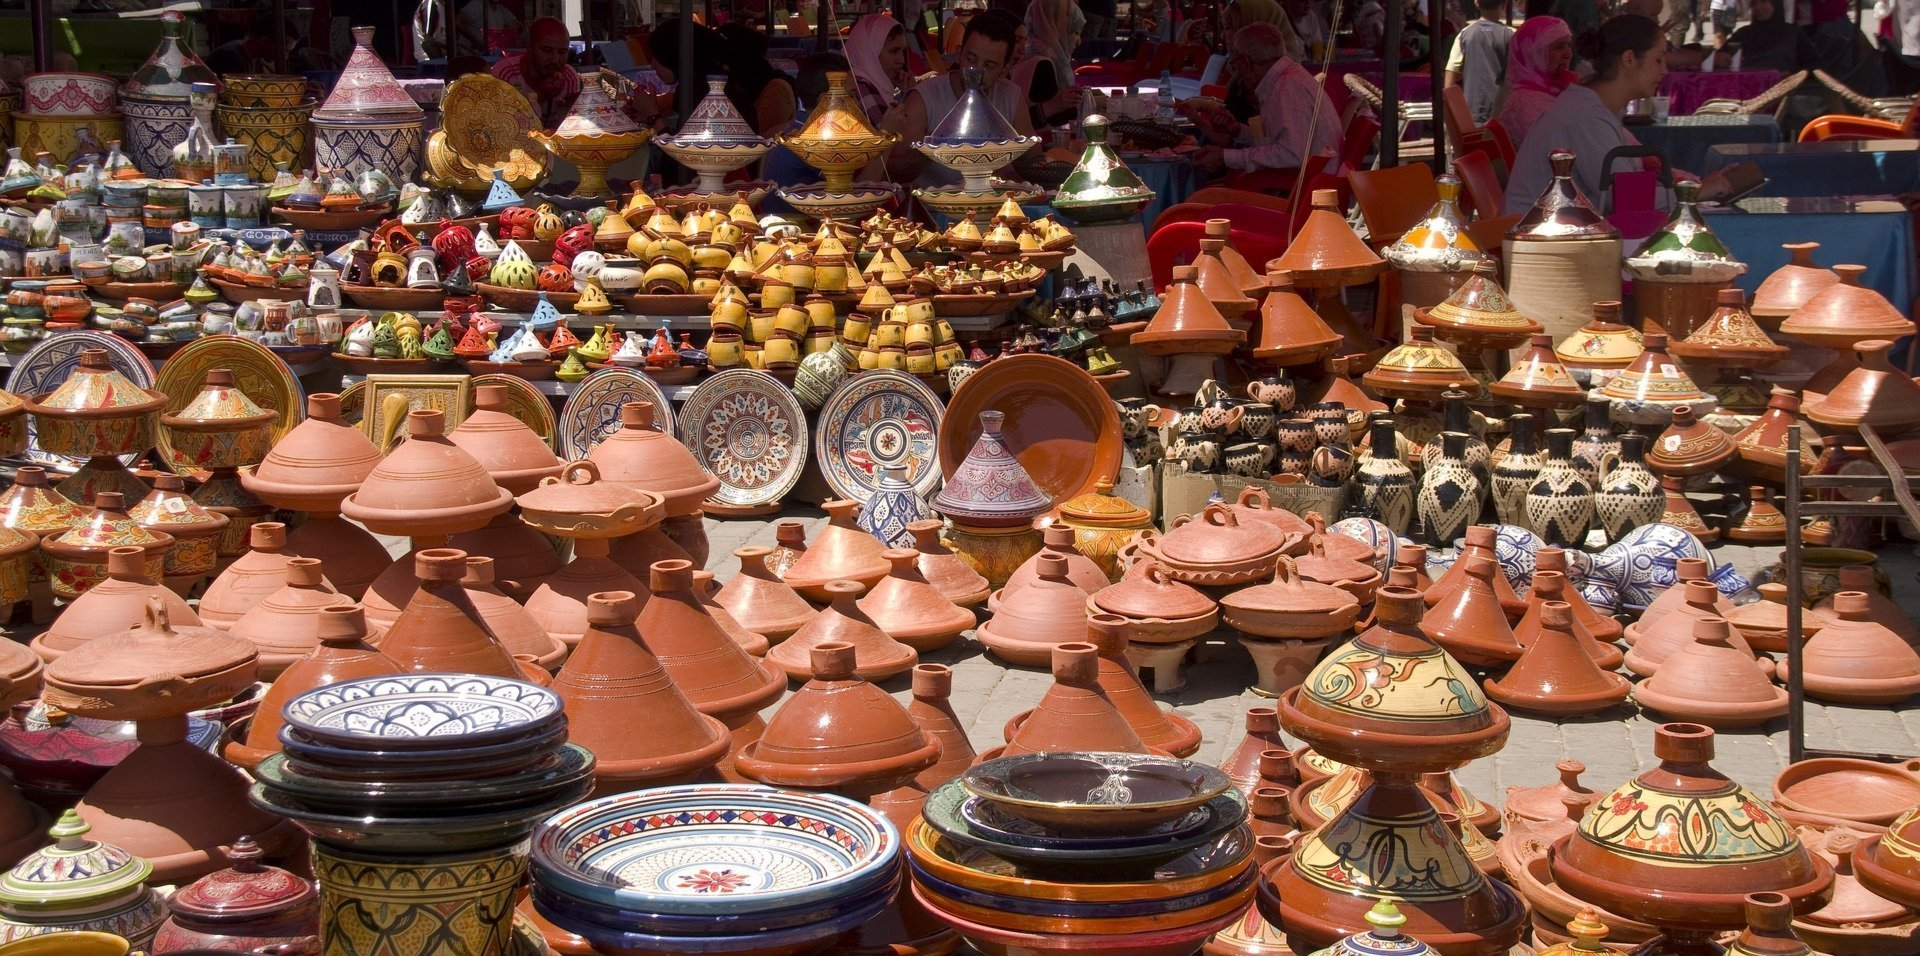 8-Day Imperial Cities Journey - Morocco Itinerary